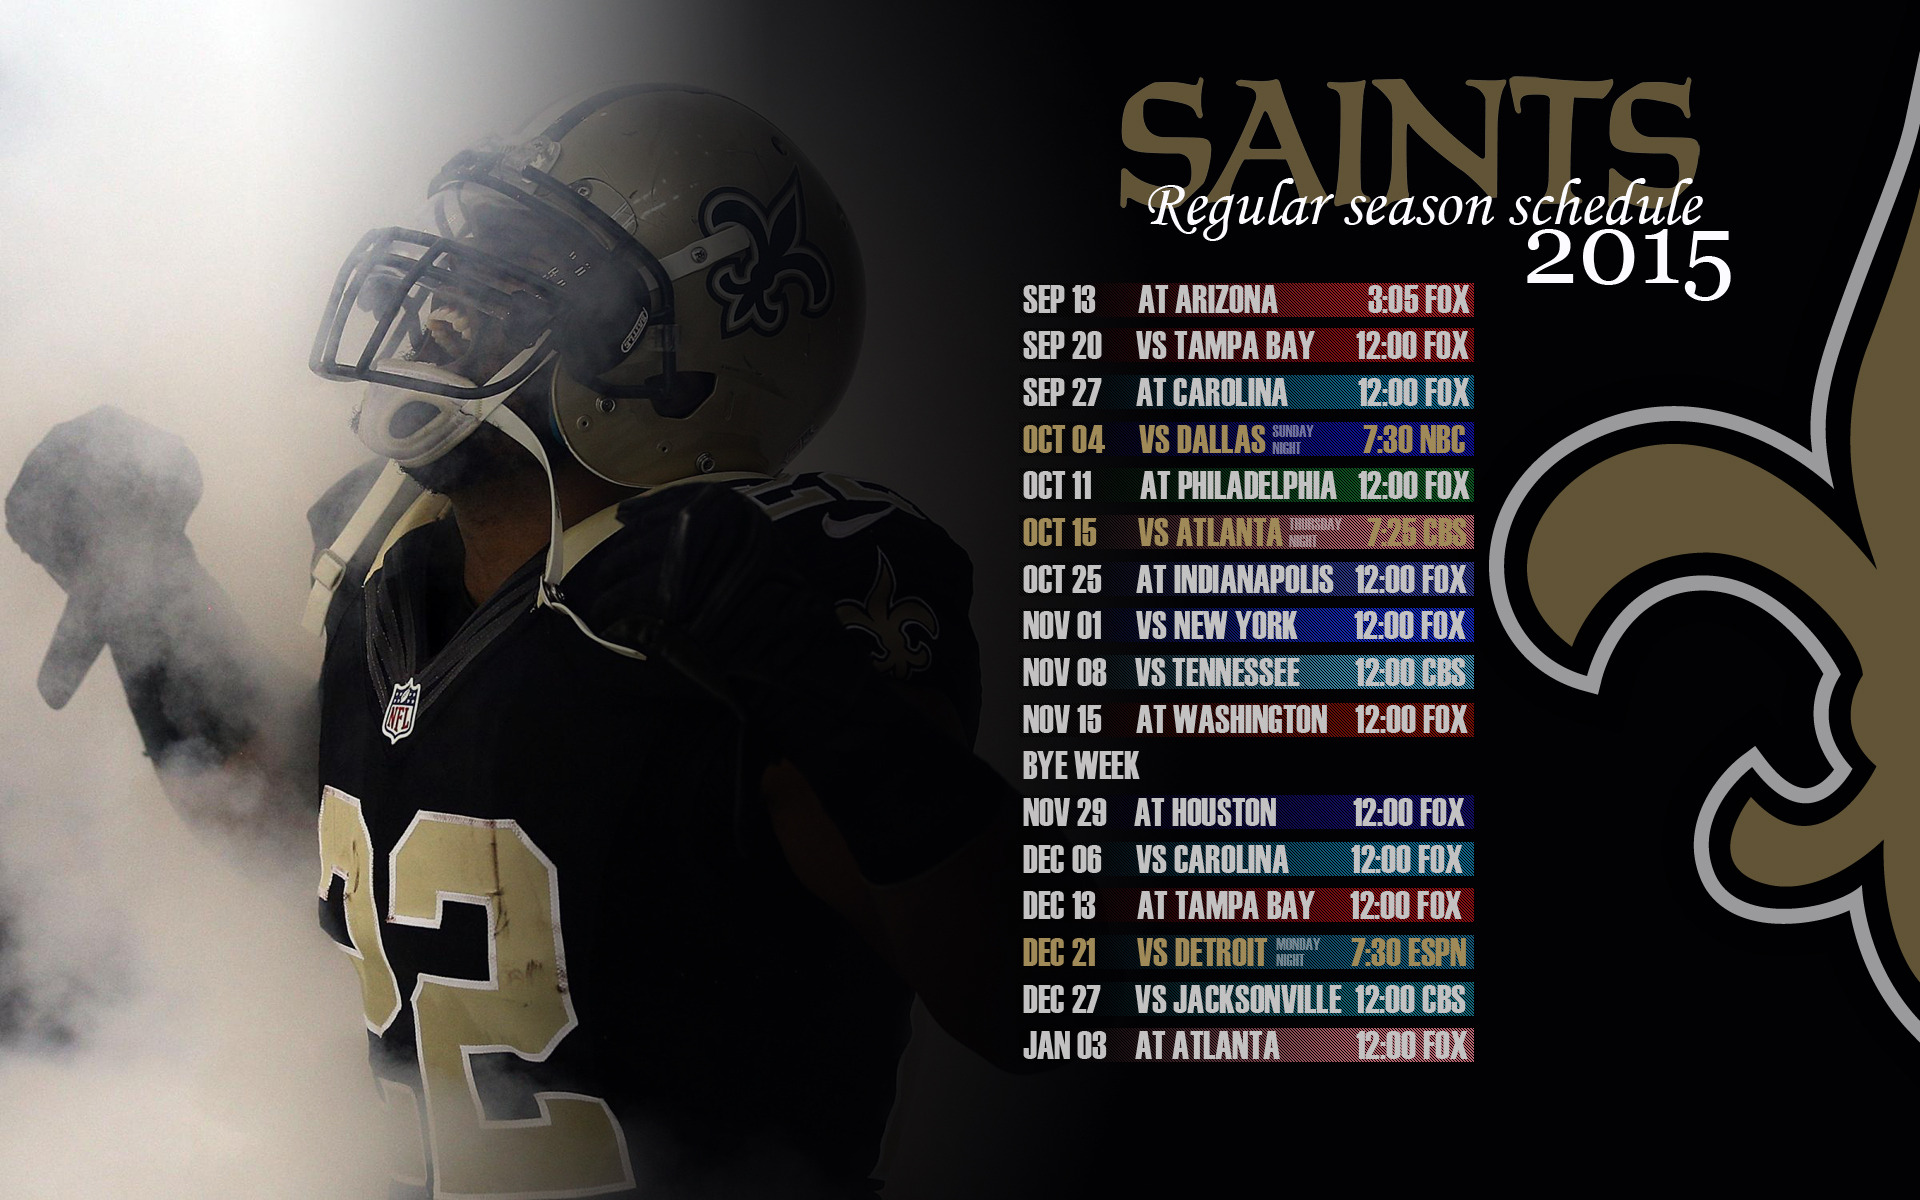 2015 SCHEDULE WALLPAPERS TigerDroppingscom 1920x1200